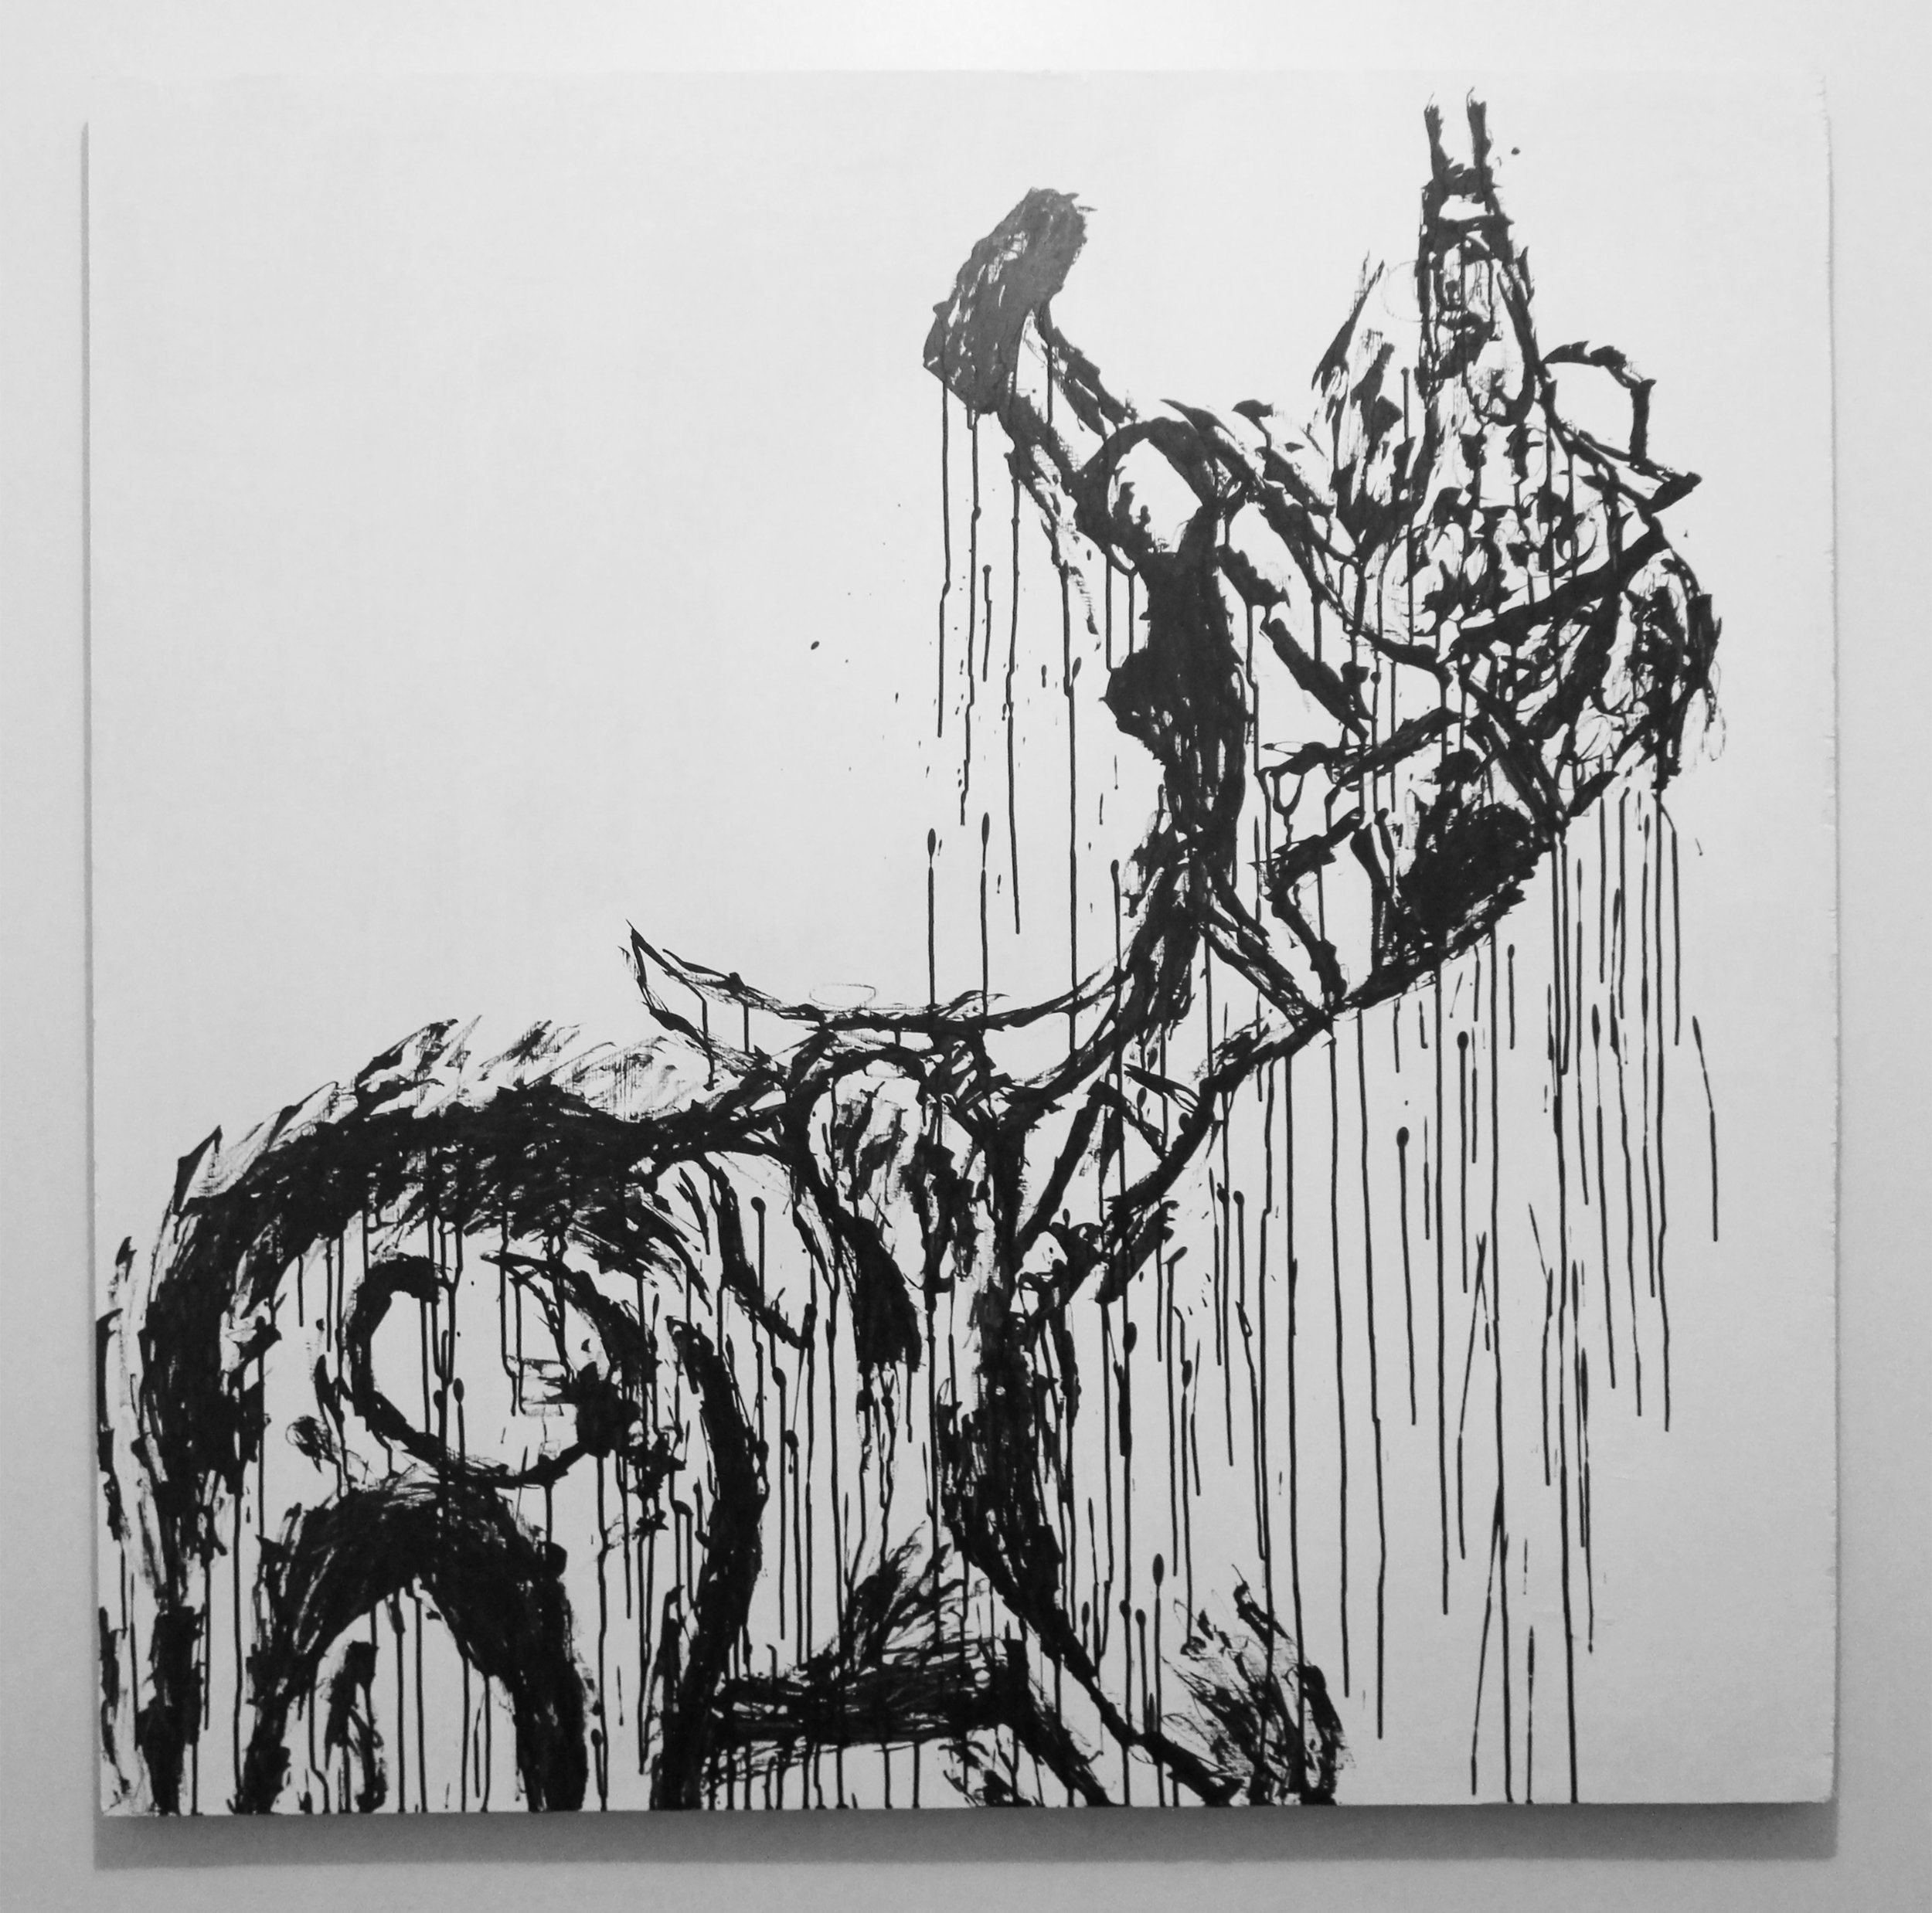 Bull and Self Transcended, 2018, sumi ink & gesso on wood panel, 48 x 48 inches